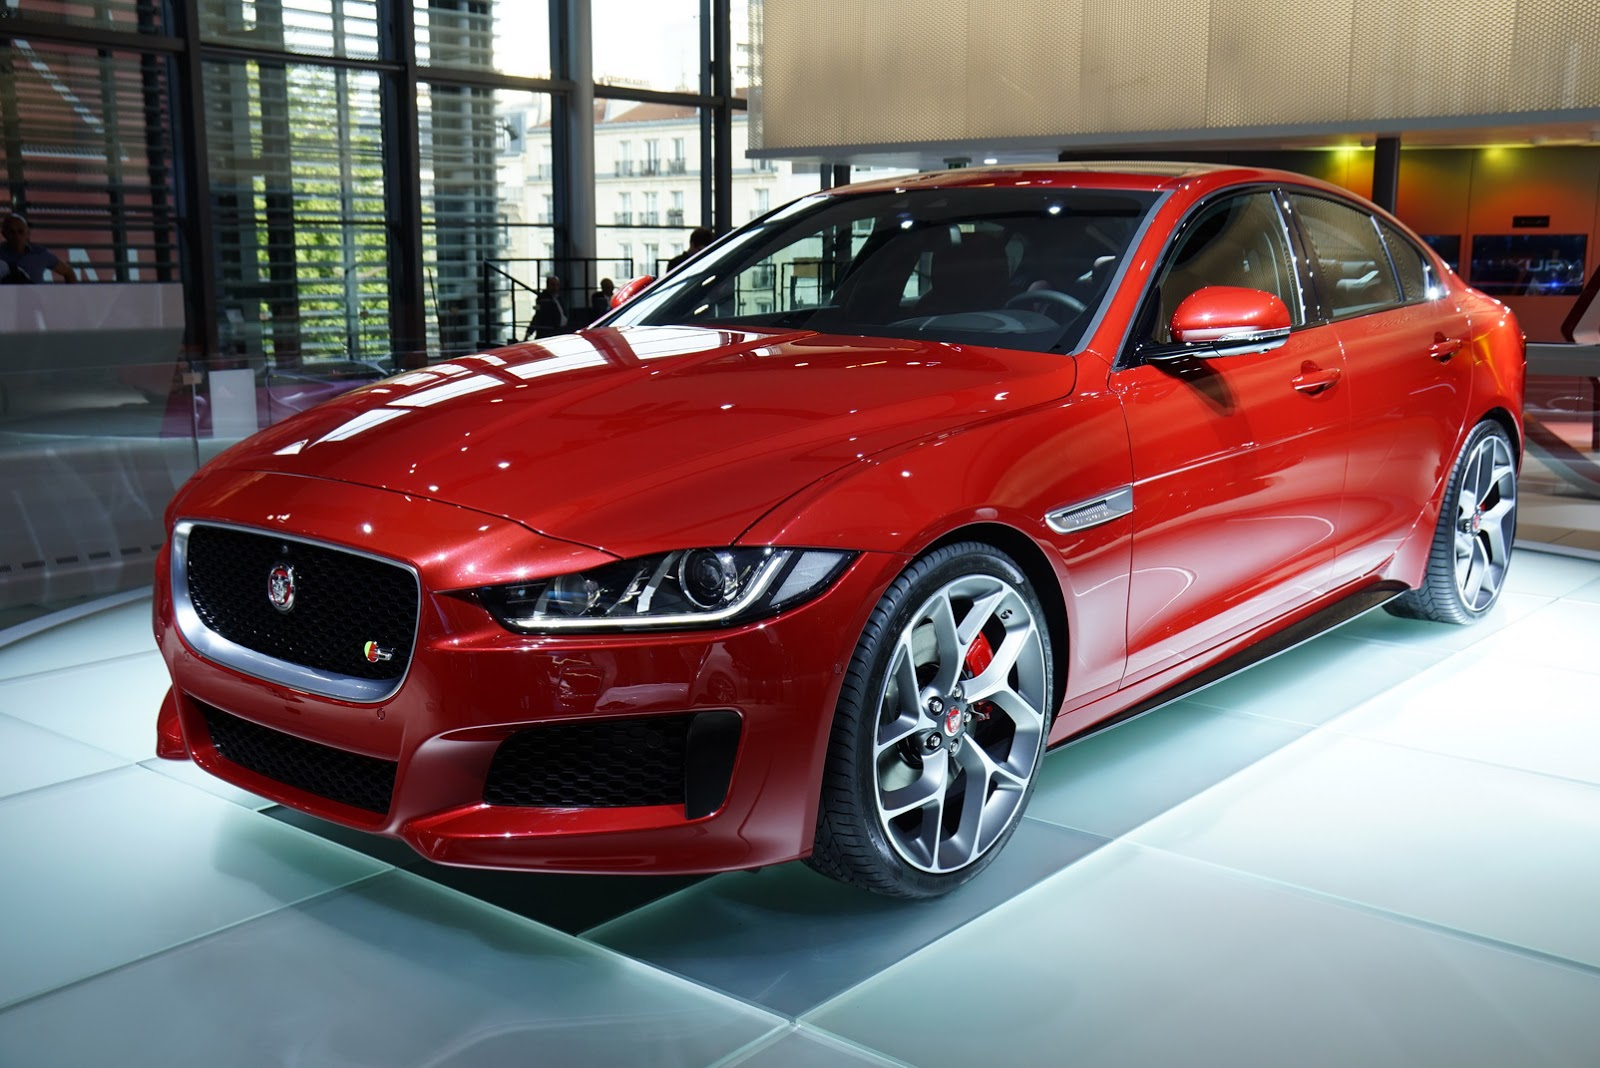 2017 jaguar xe priced from 34 900 new 2016 xf from 51 900 carscoops. Black Bedroom Furniture Sets. Home Design Ideas